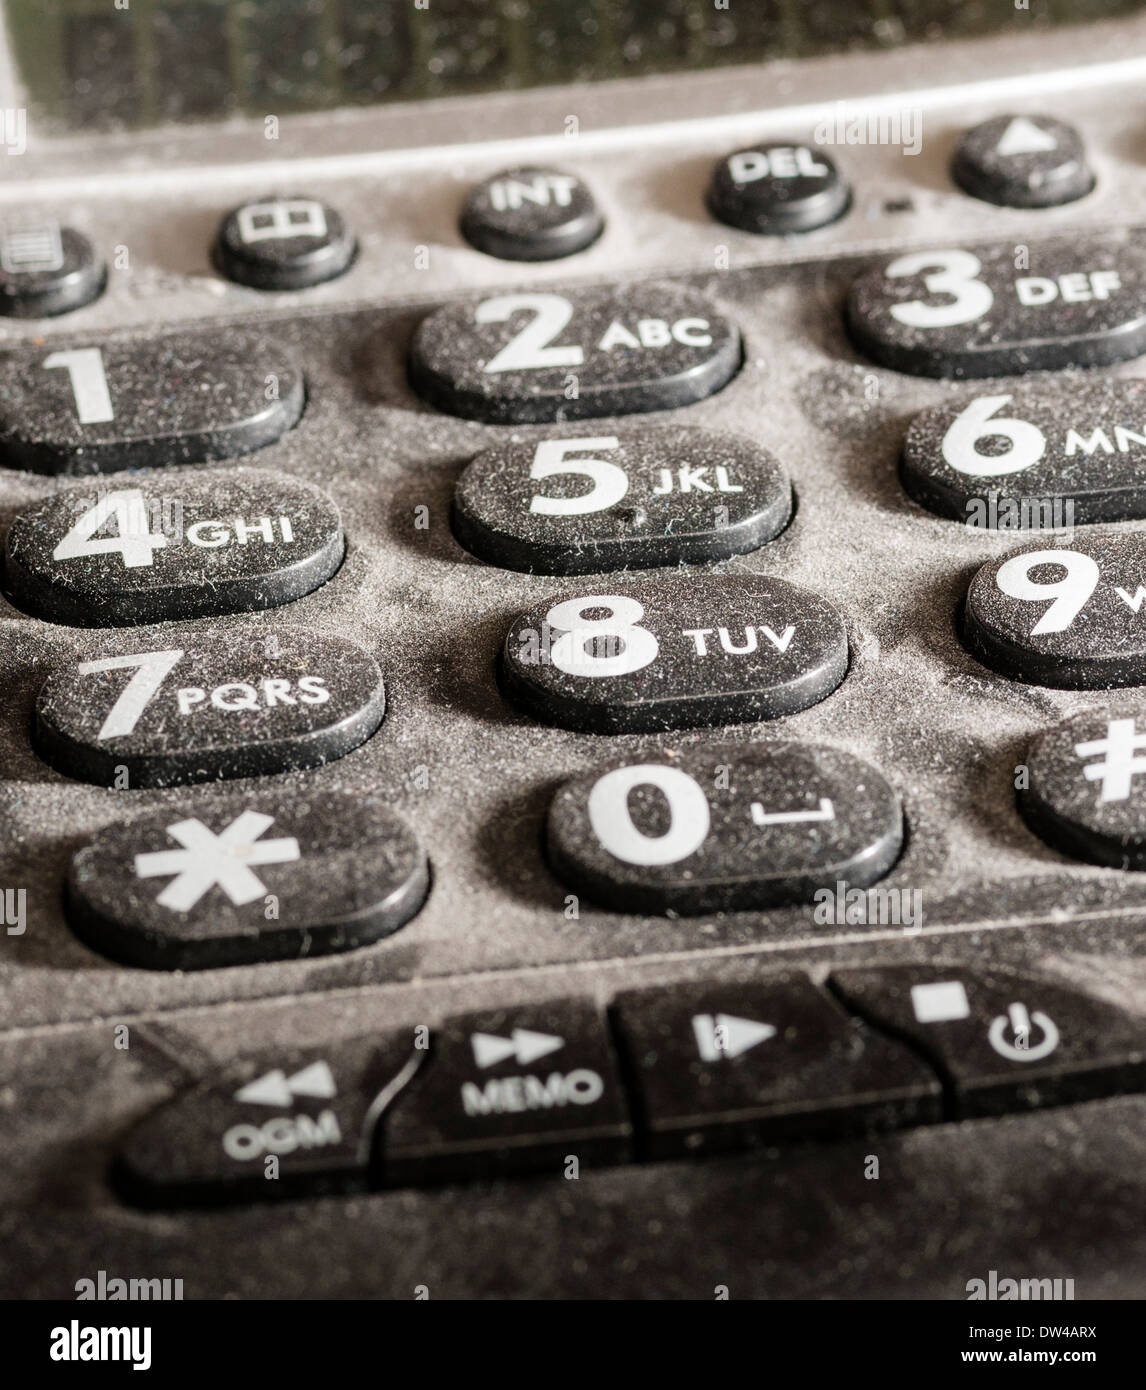 Close up of dusty telephone key pad, evenly lit. Stock Photo